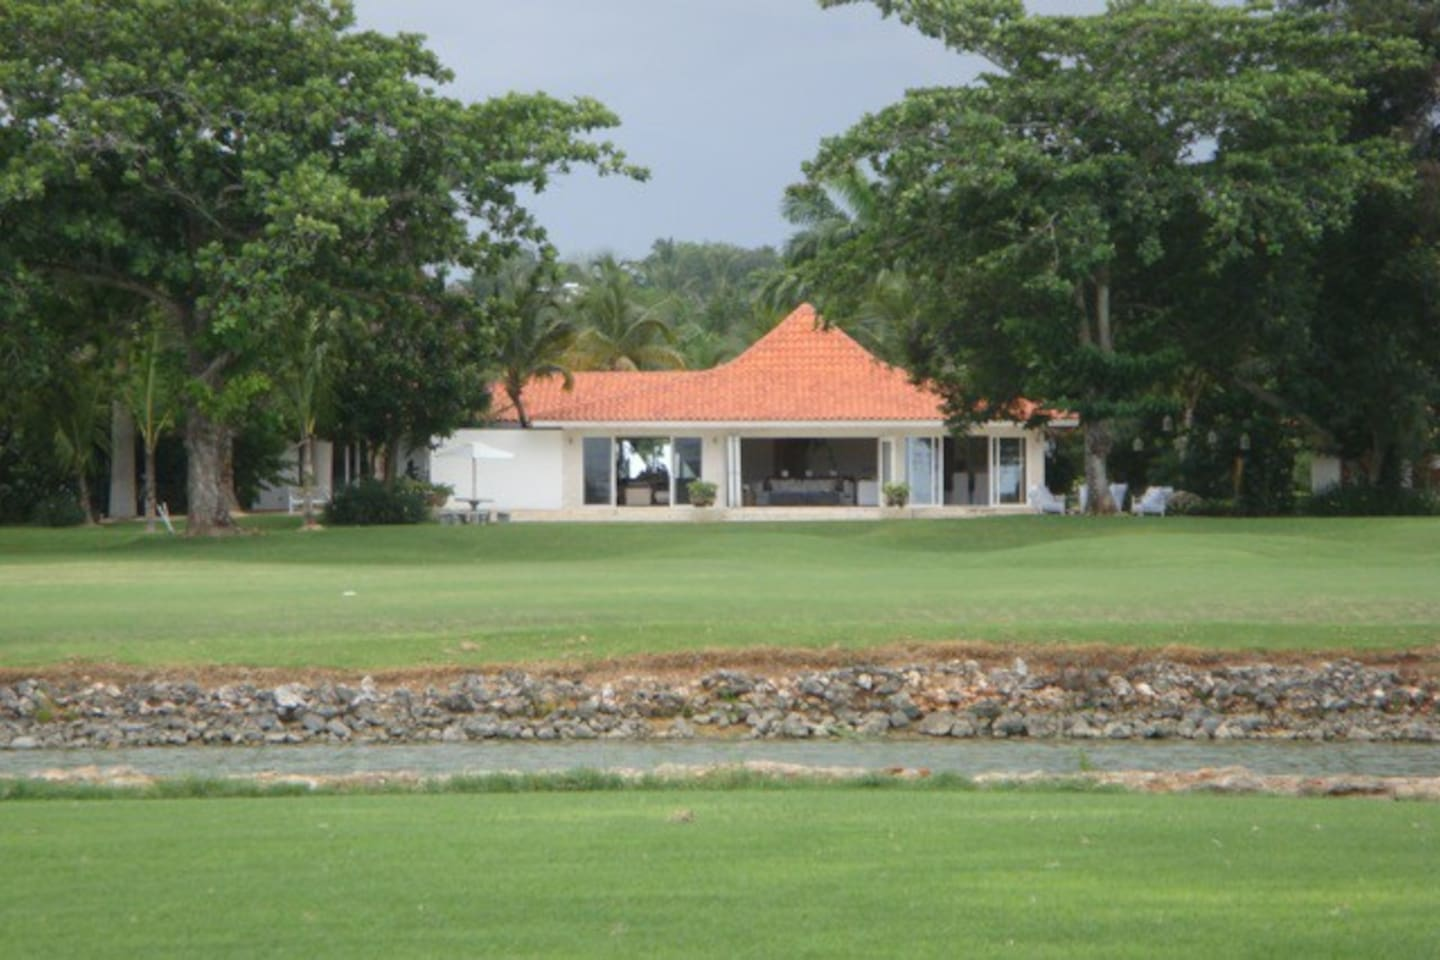 Picture of the villa from the other side of the lake